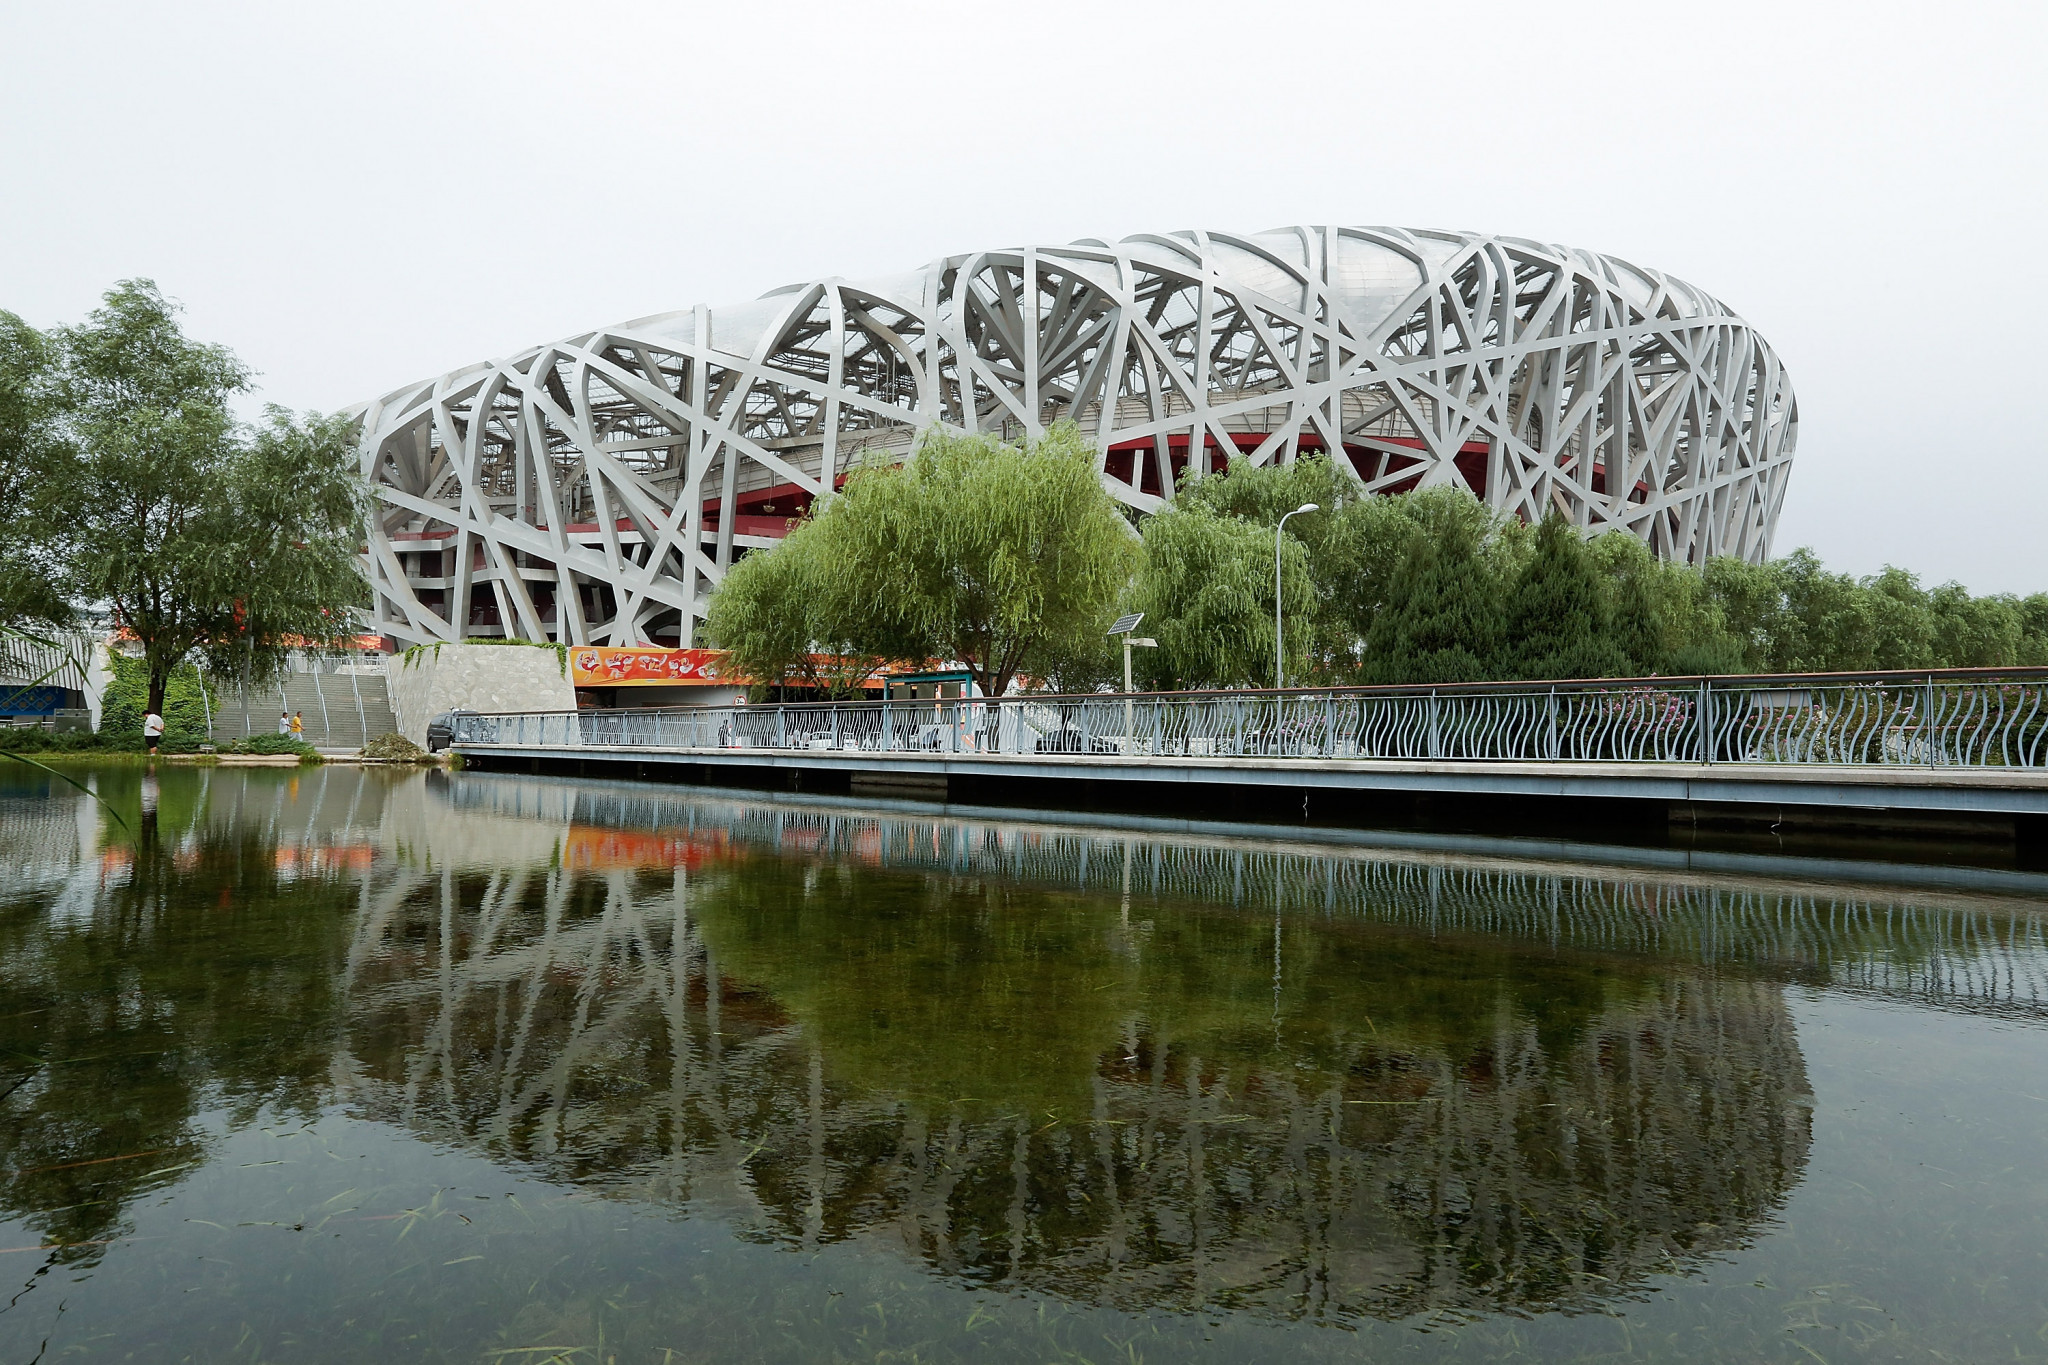 The iconic Bird's Nest Stadium will be used for the Beijing 2022 Opening and Closing Ceremonies ©Getty Images